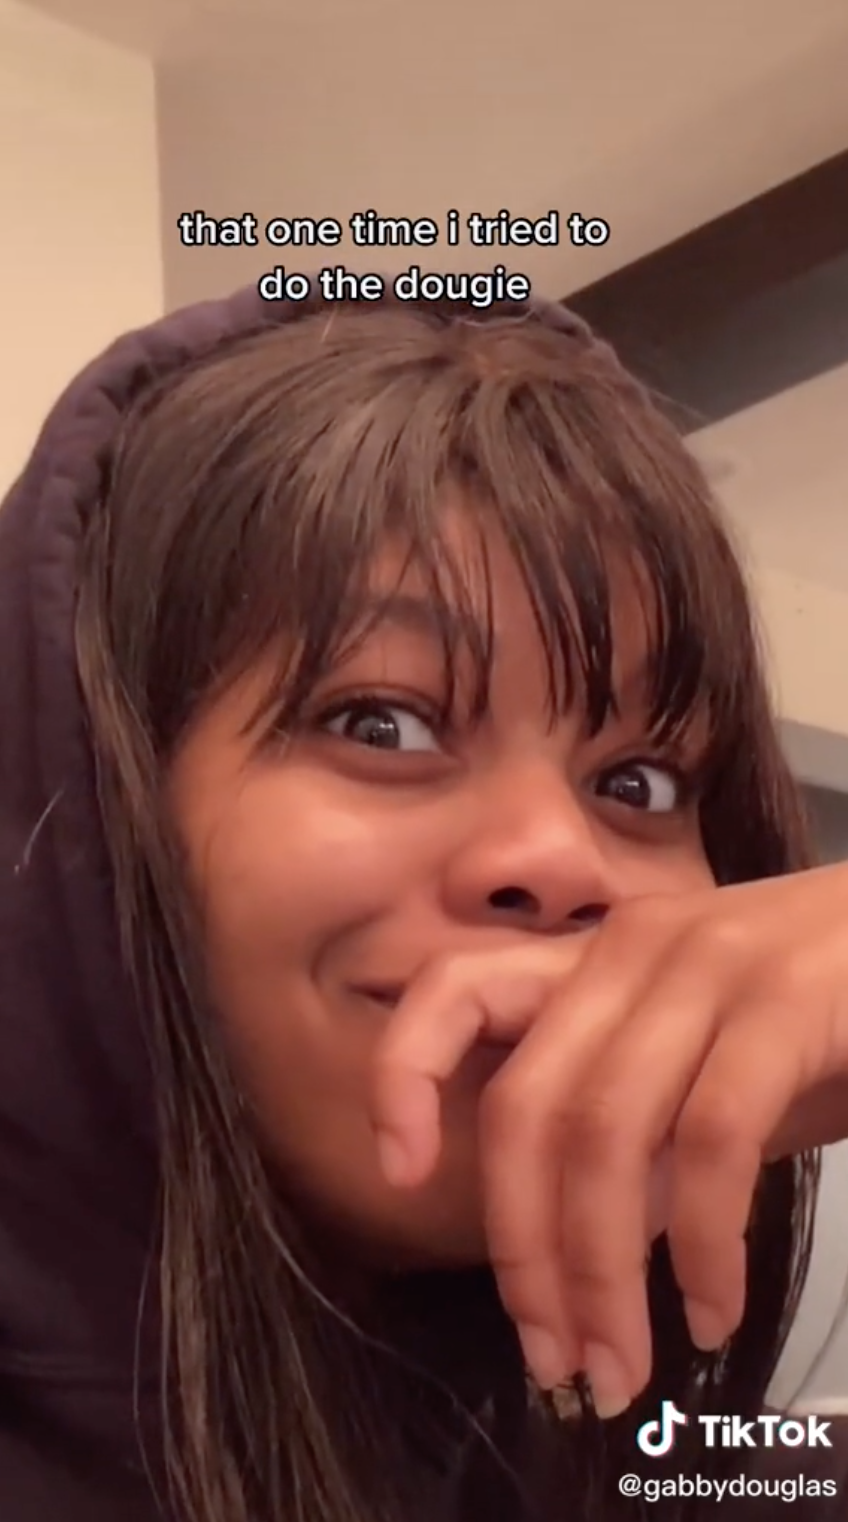 Gabby Douglas stares at the camera with wide eyes